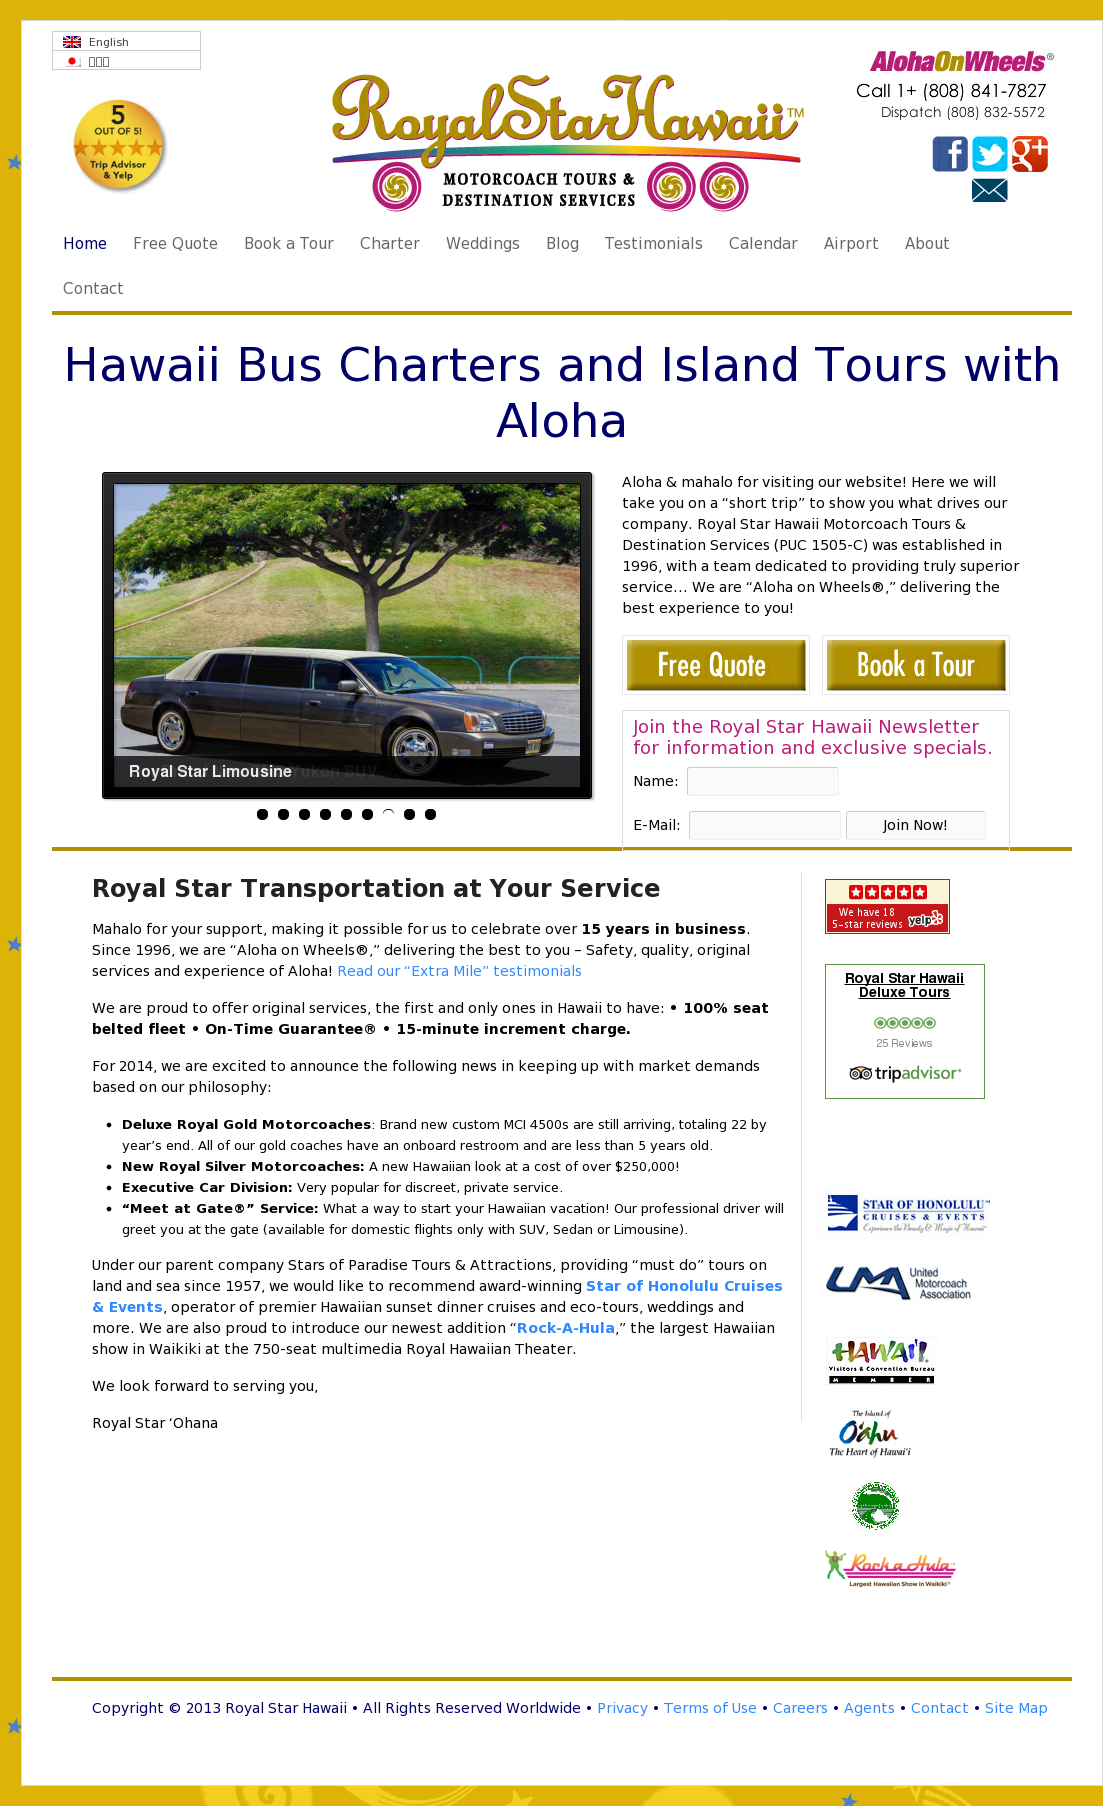 Royal Star Hawaii Competitors, Revenue and Employees - Owler Company